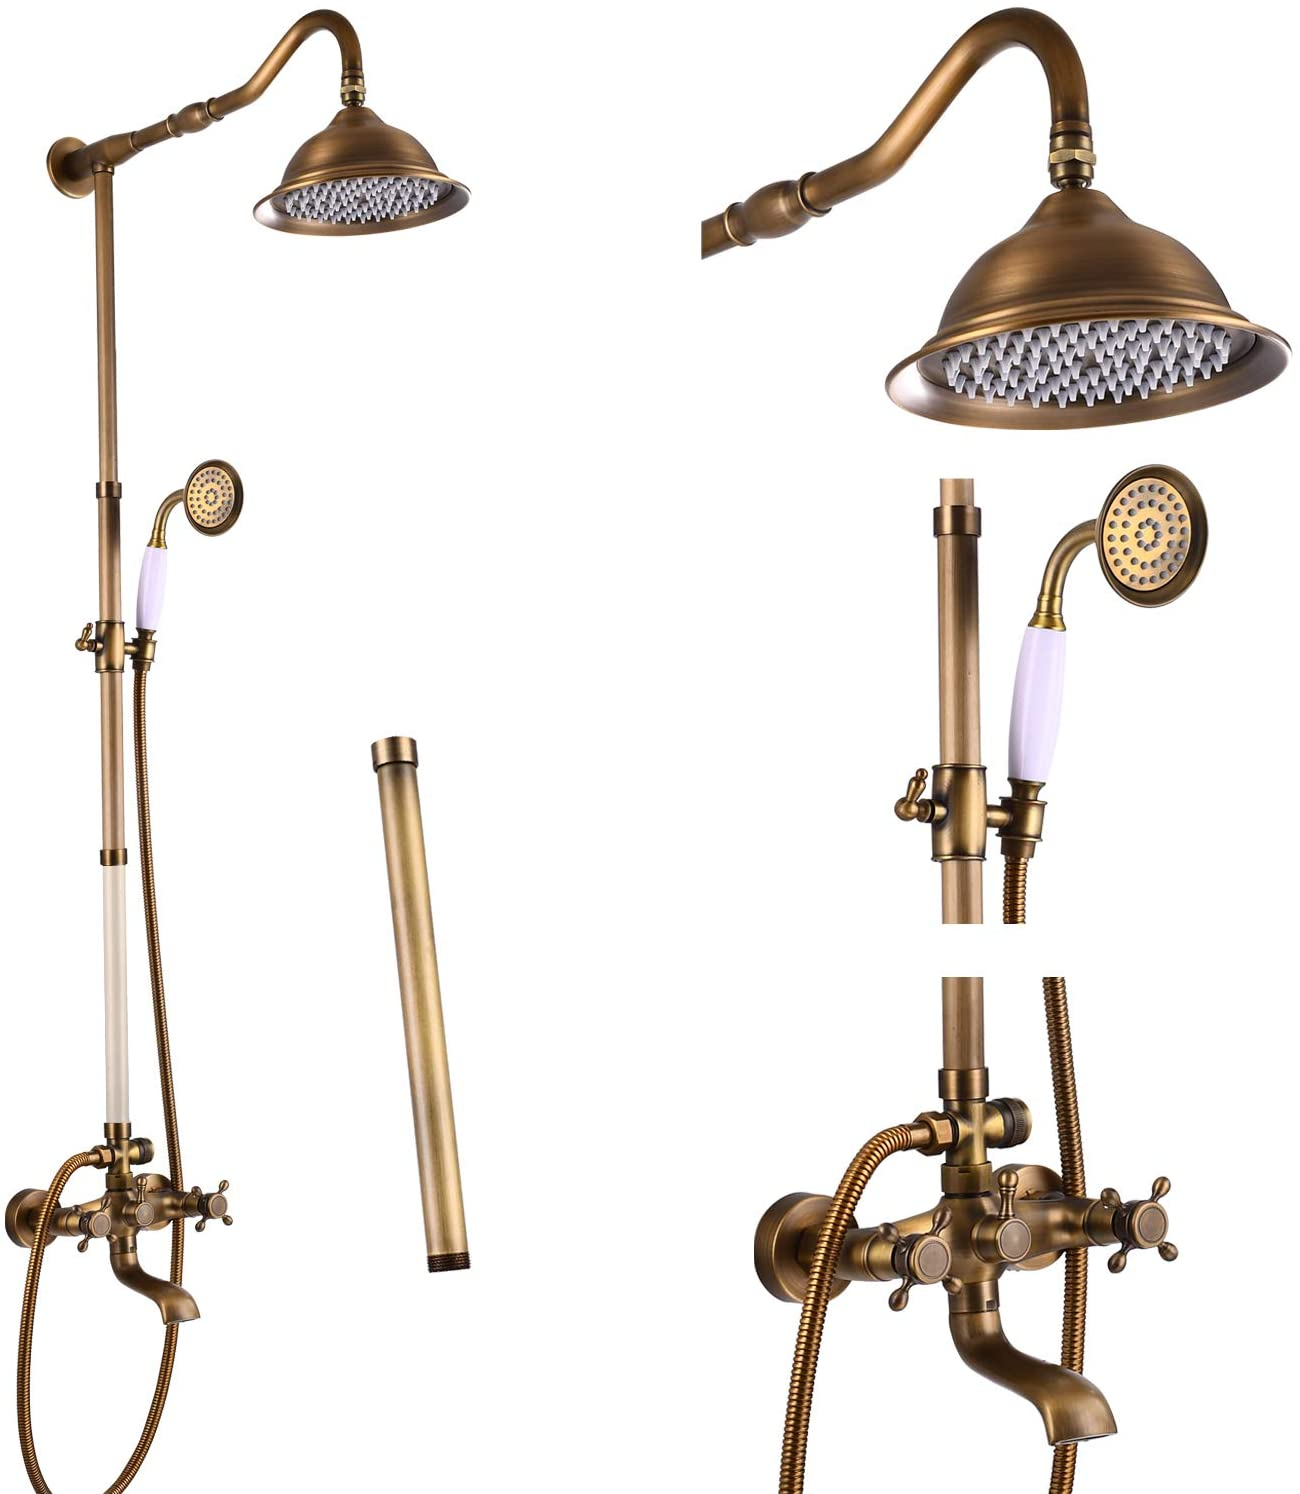 Aolemi Antique Brass Shower Faucet Set with Hand Sprayer and Tub Spout 12 Inch Extension Tube Included Bathroom 8 Inch Rain Shower Head System Wall Mount 3 Functions Double Cross Handle